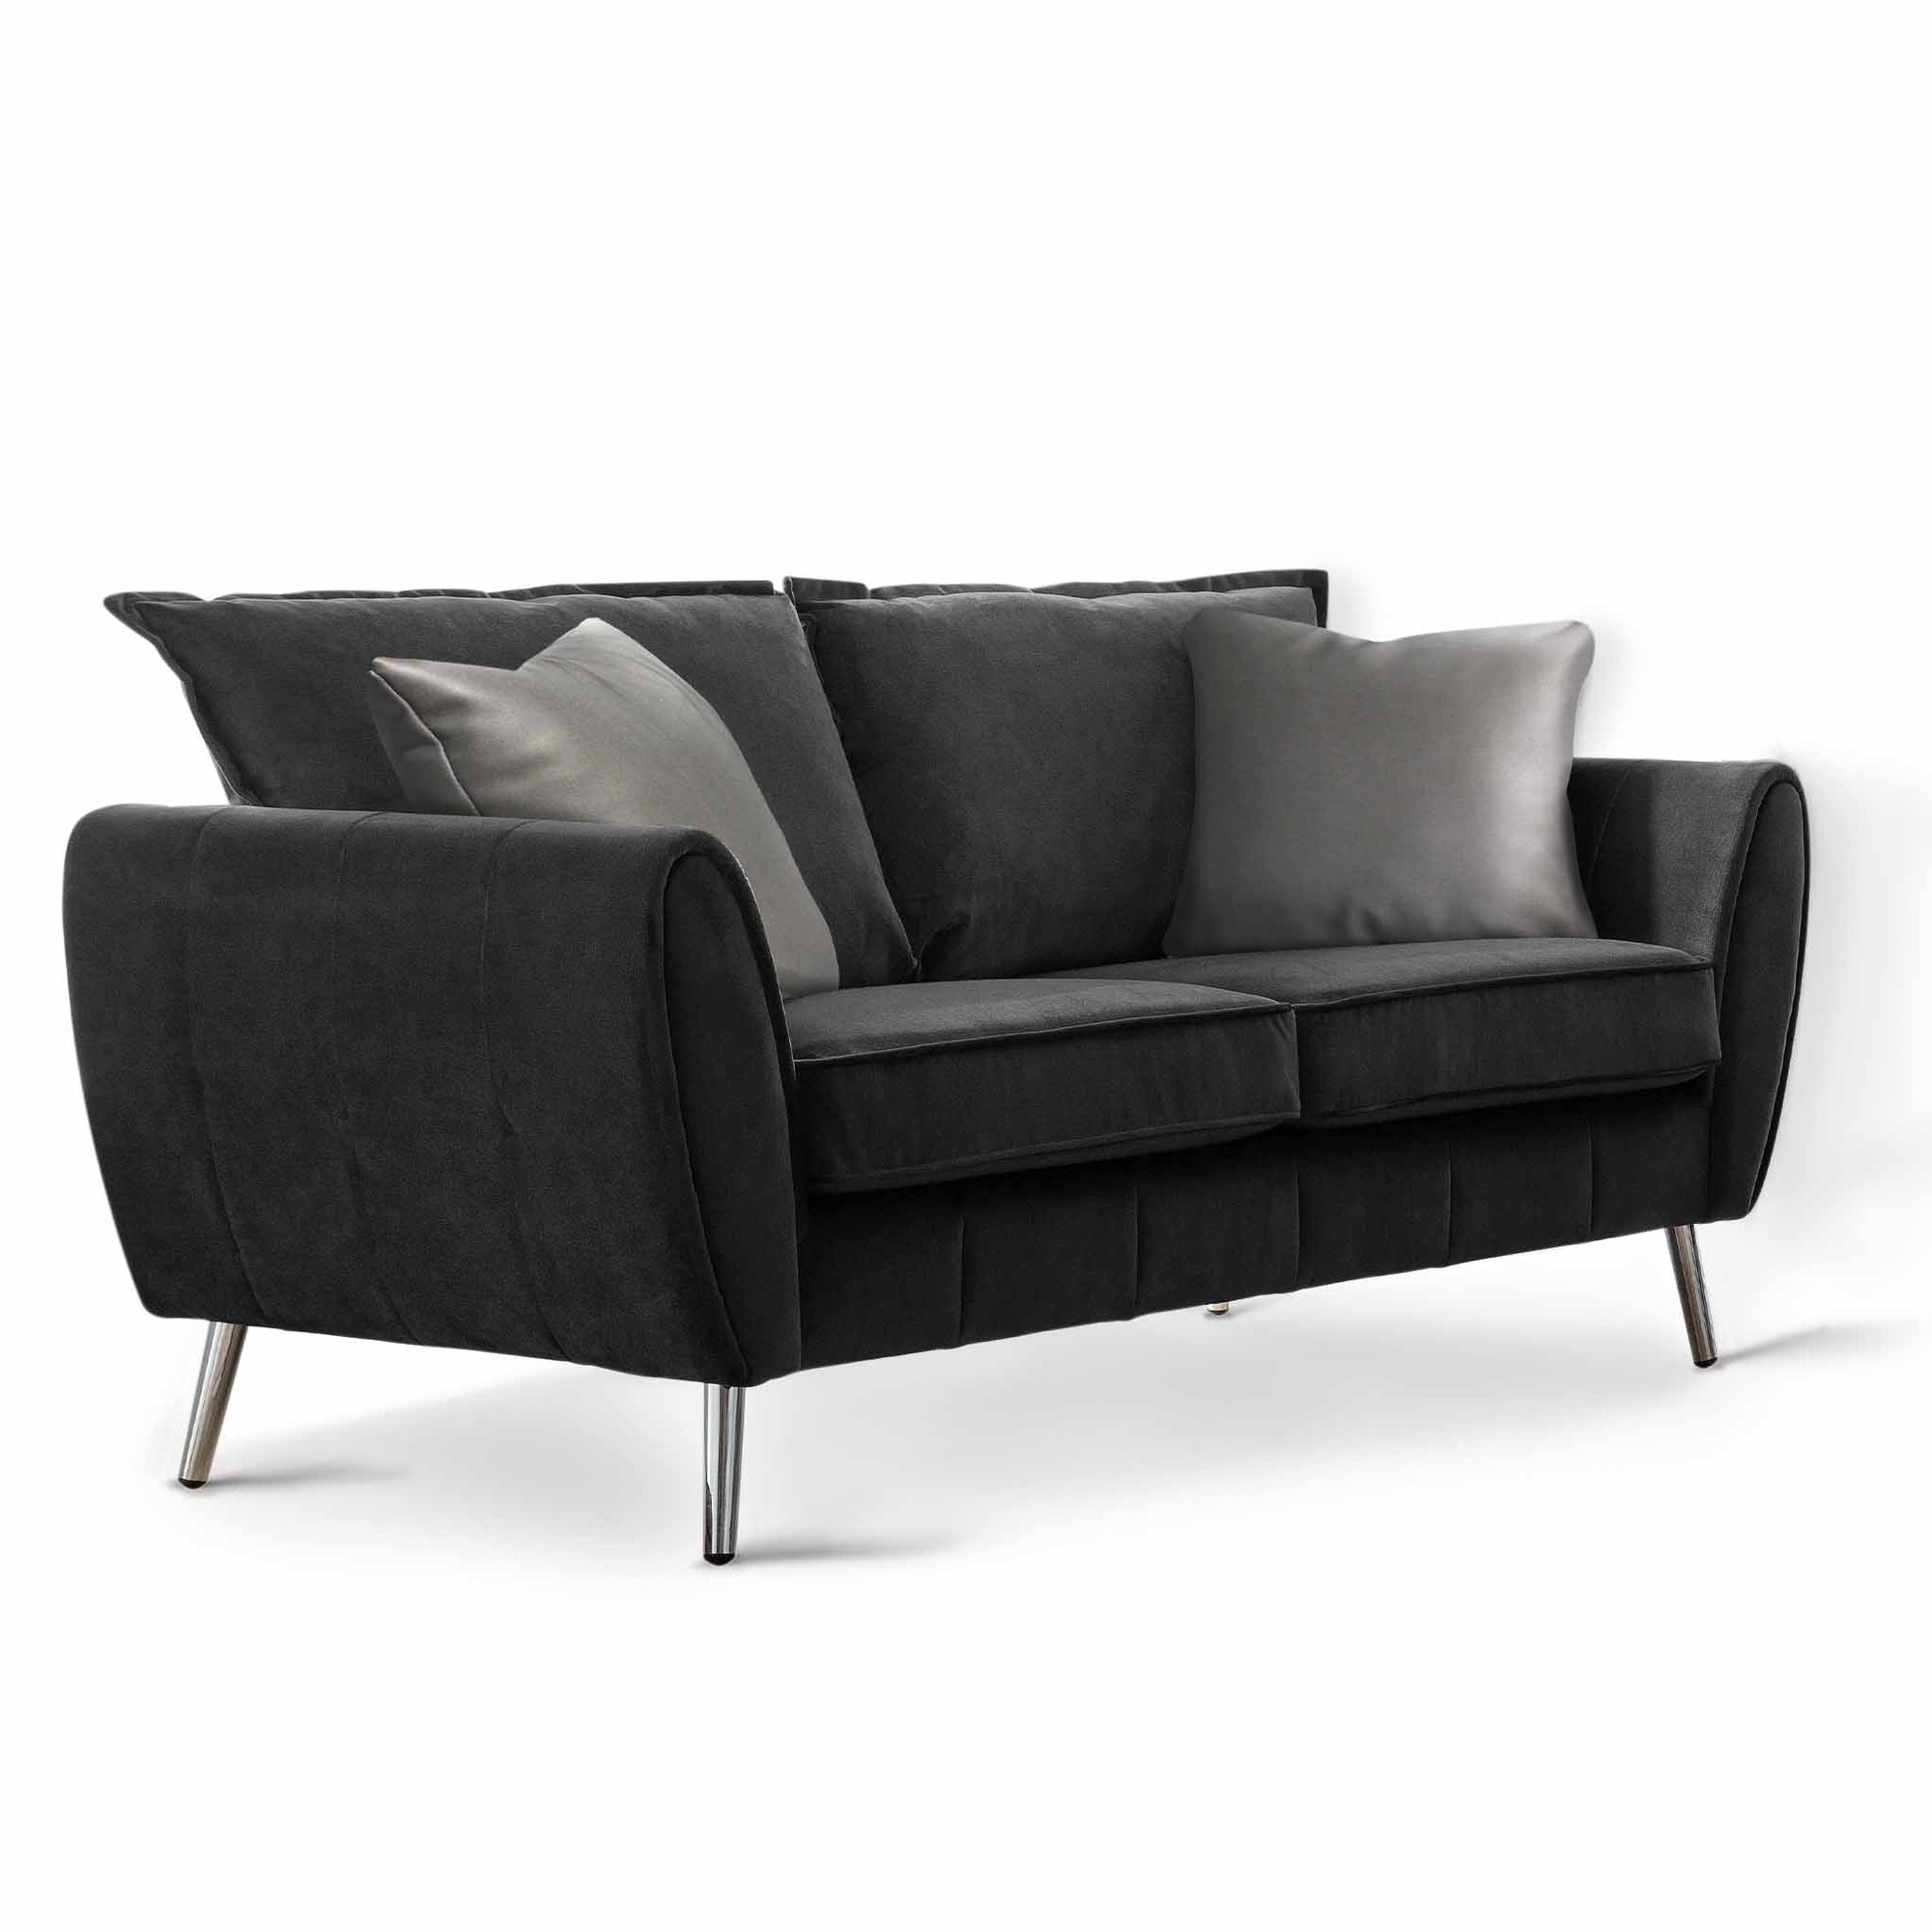 Milano Jet Black 2 Seater Sofa by Roseland Furniture